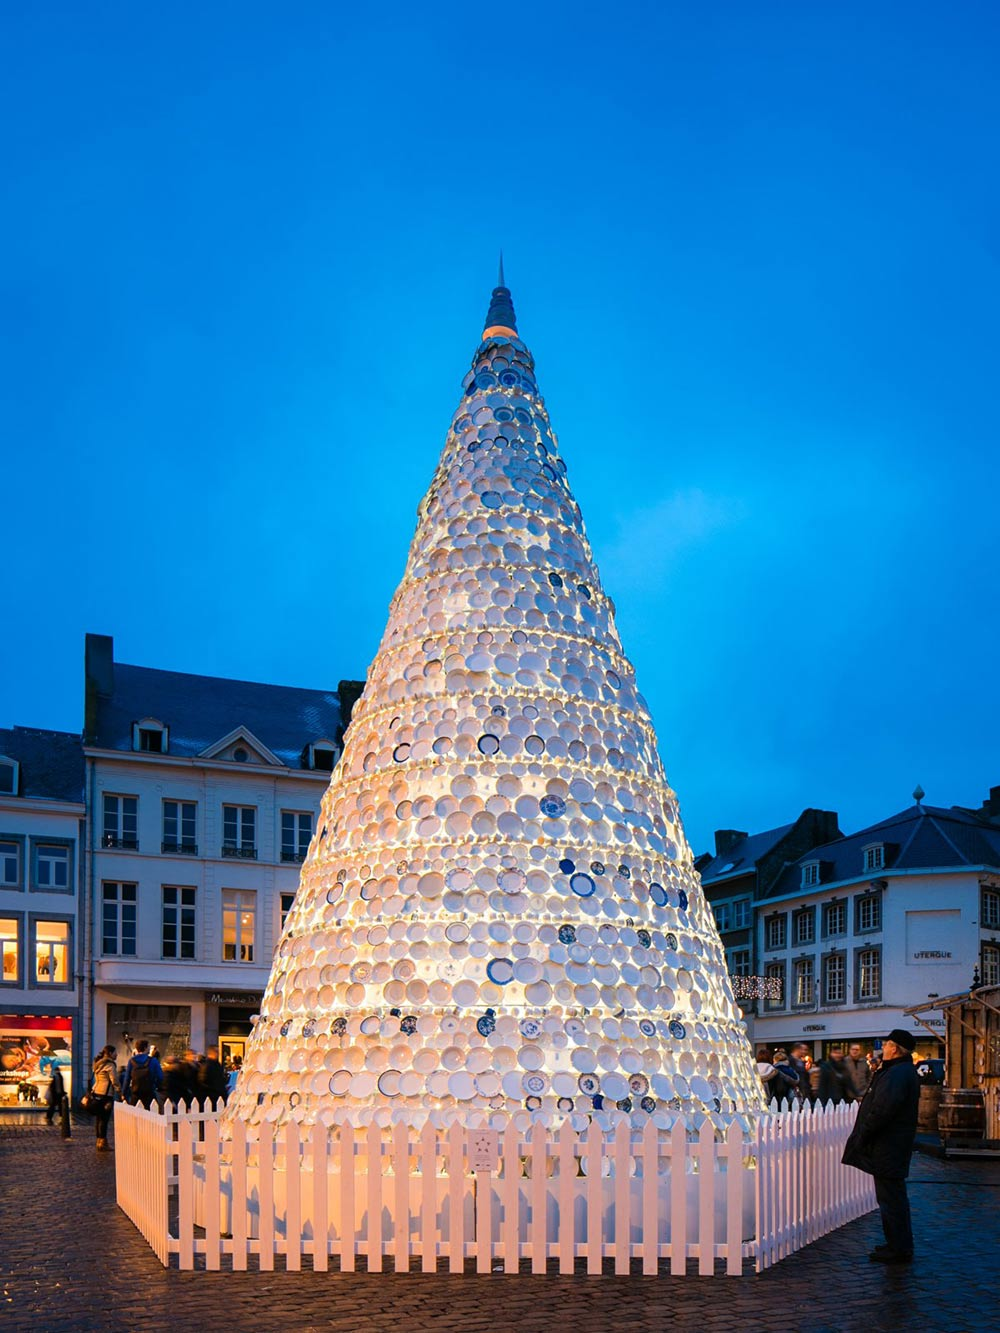 Porcelain Christmas Tree in Hasselt, Belgium by Mooz